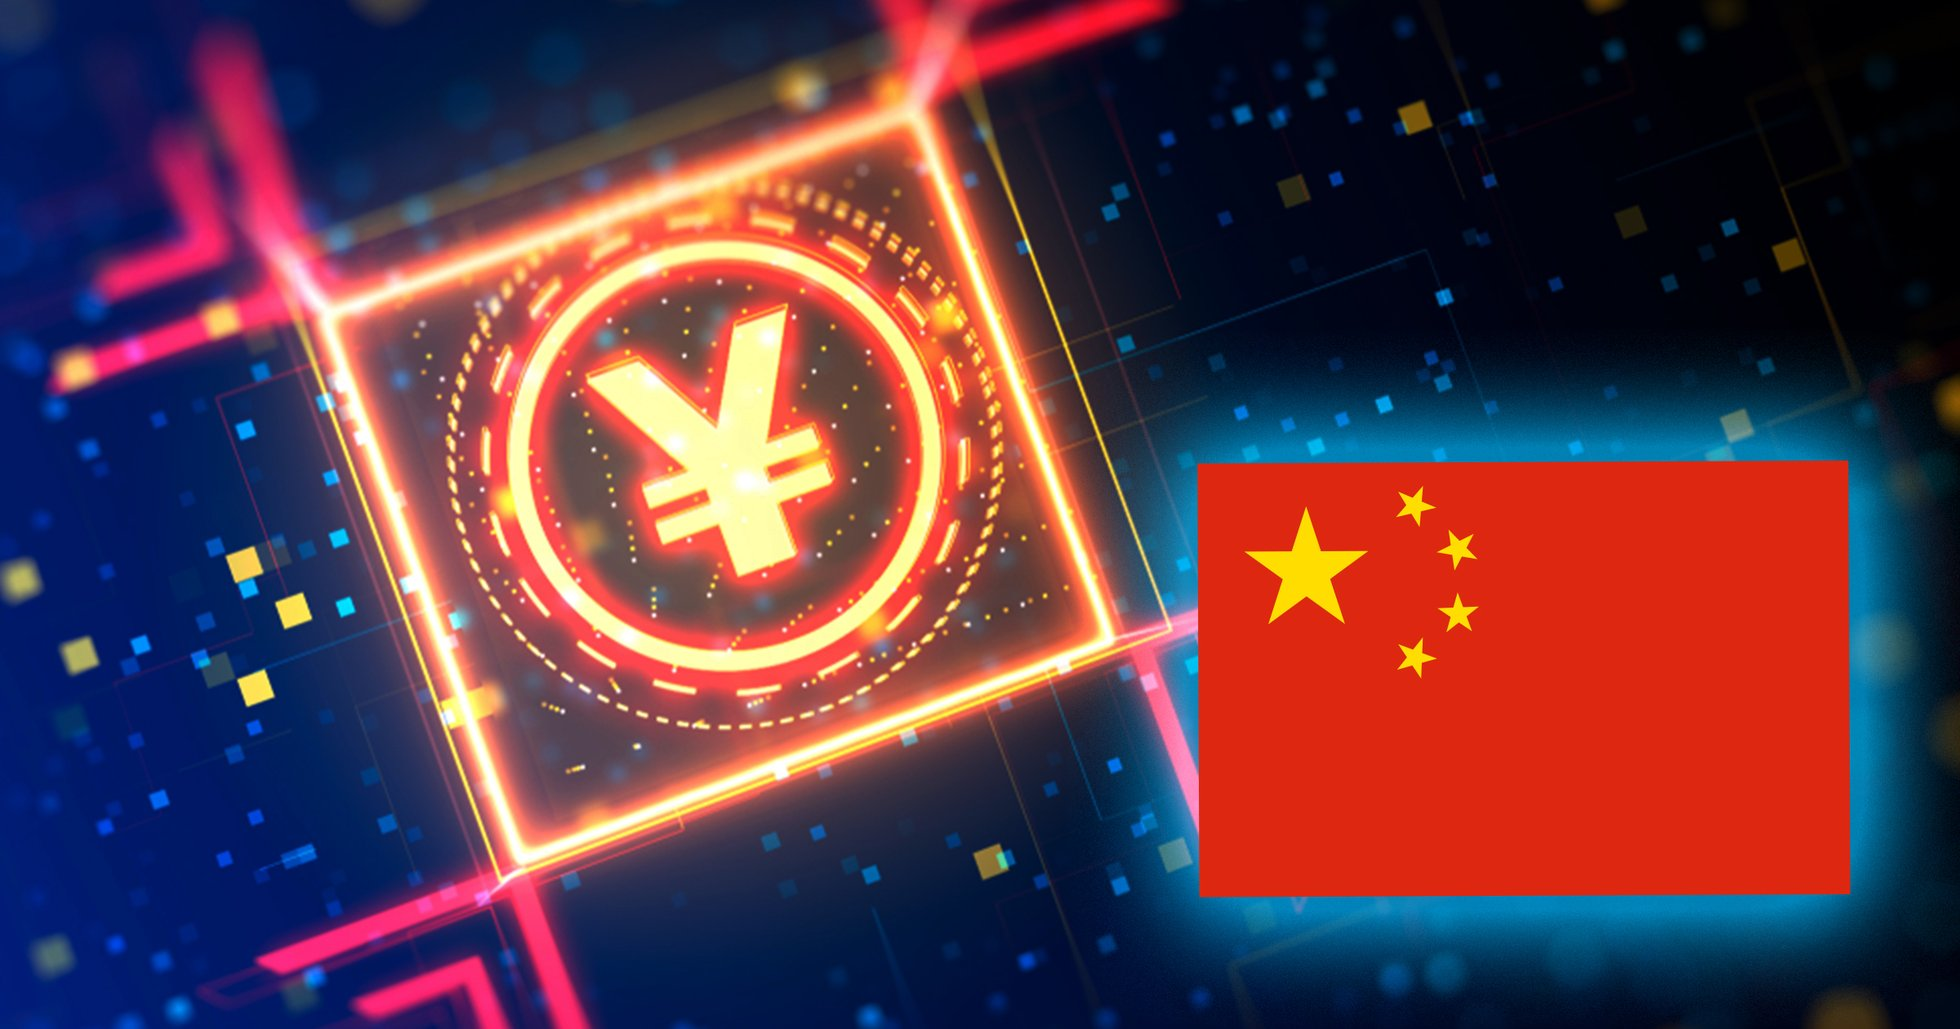 China's central bank accelerates cryptocurrency development